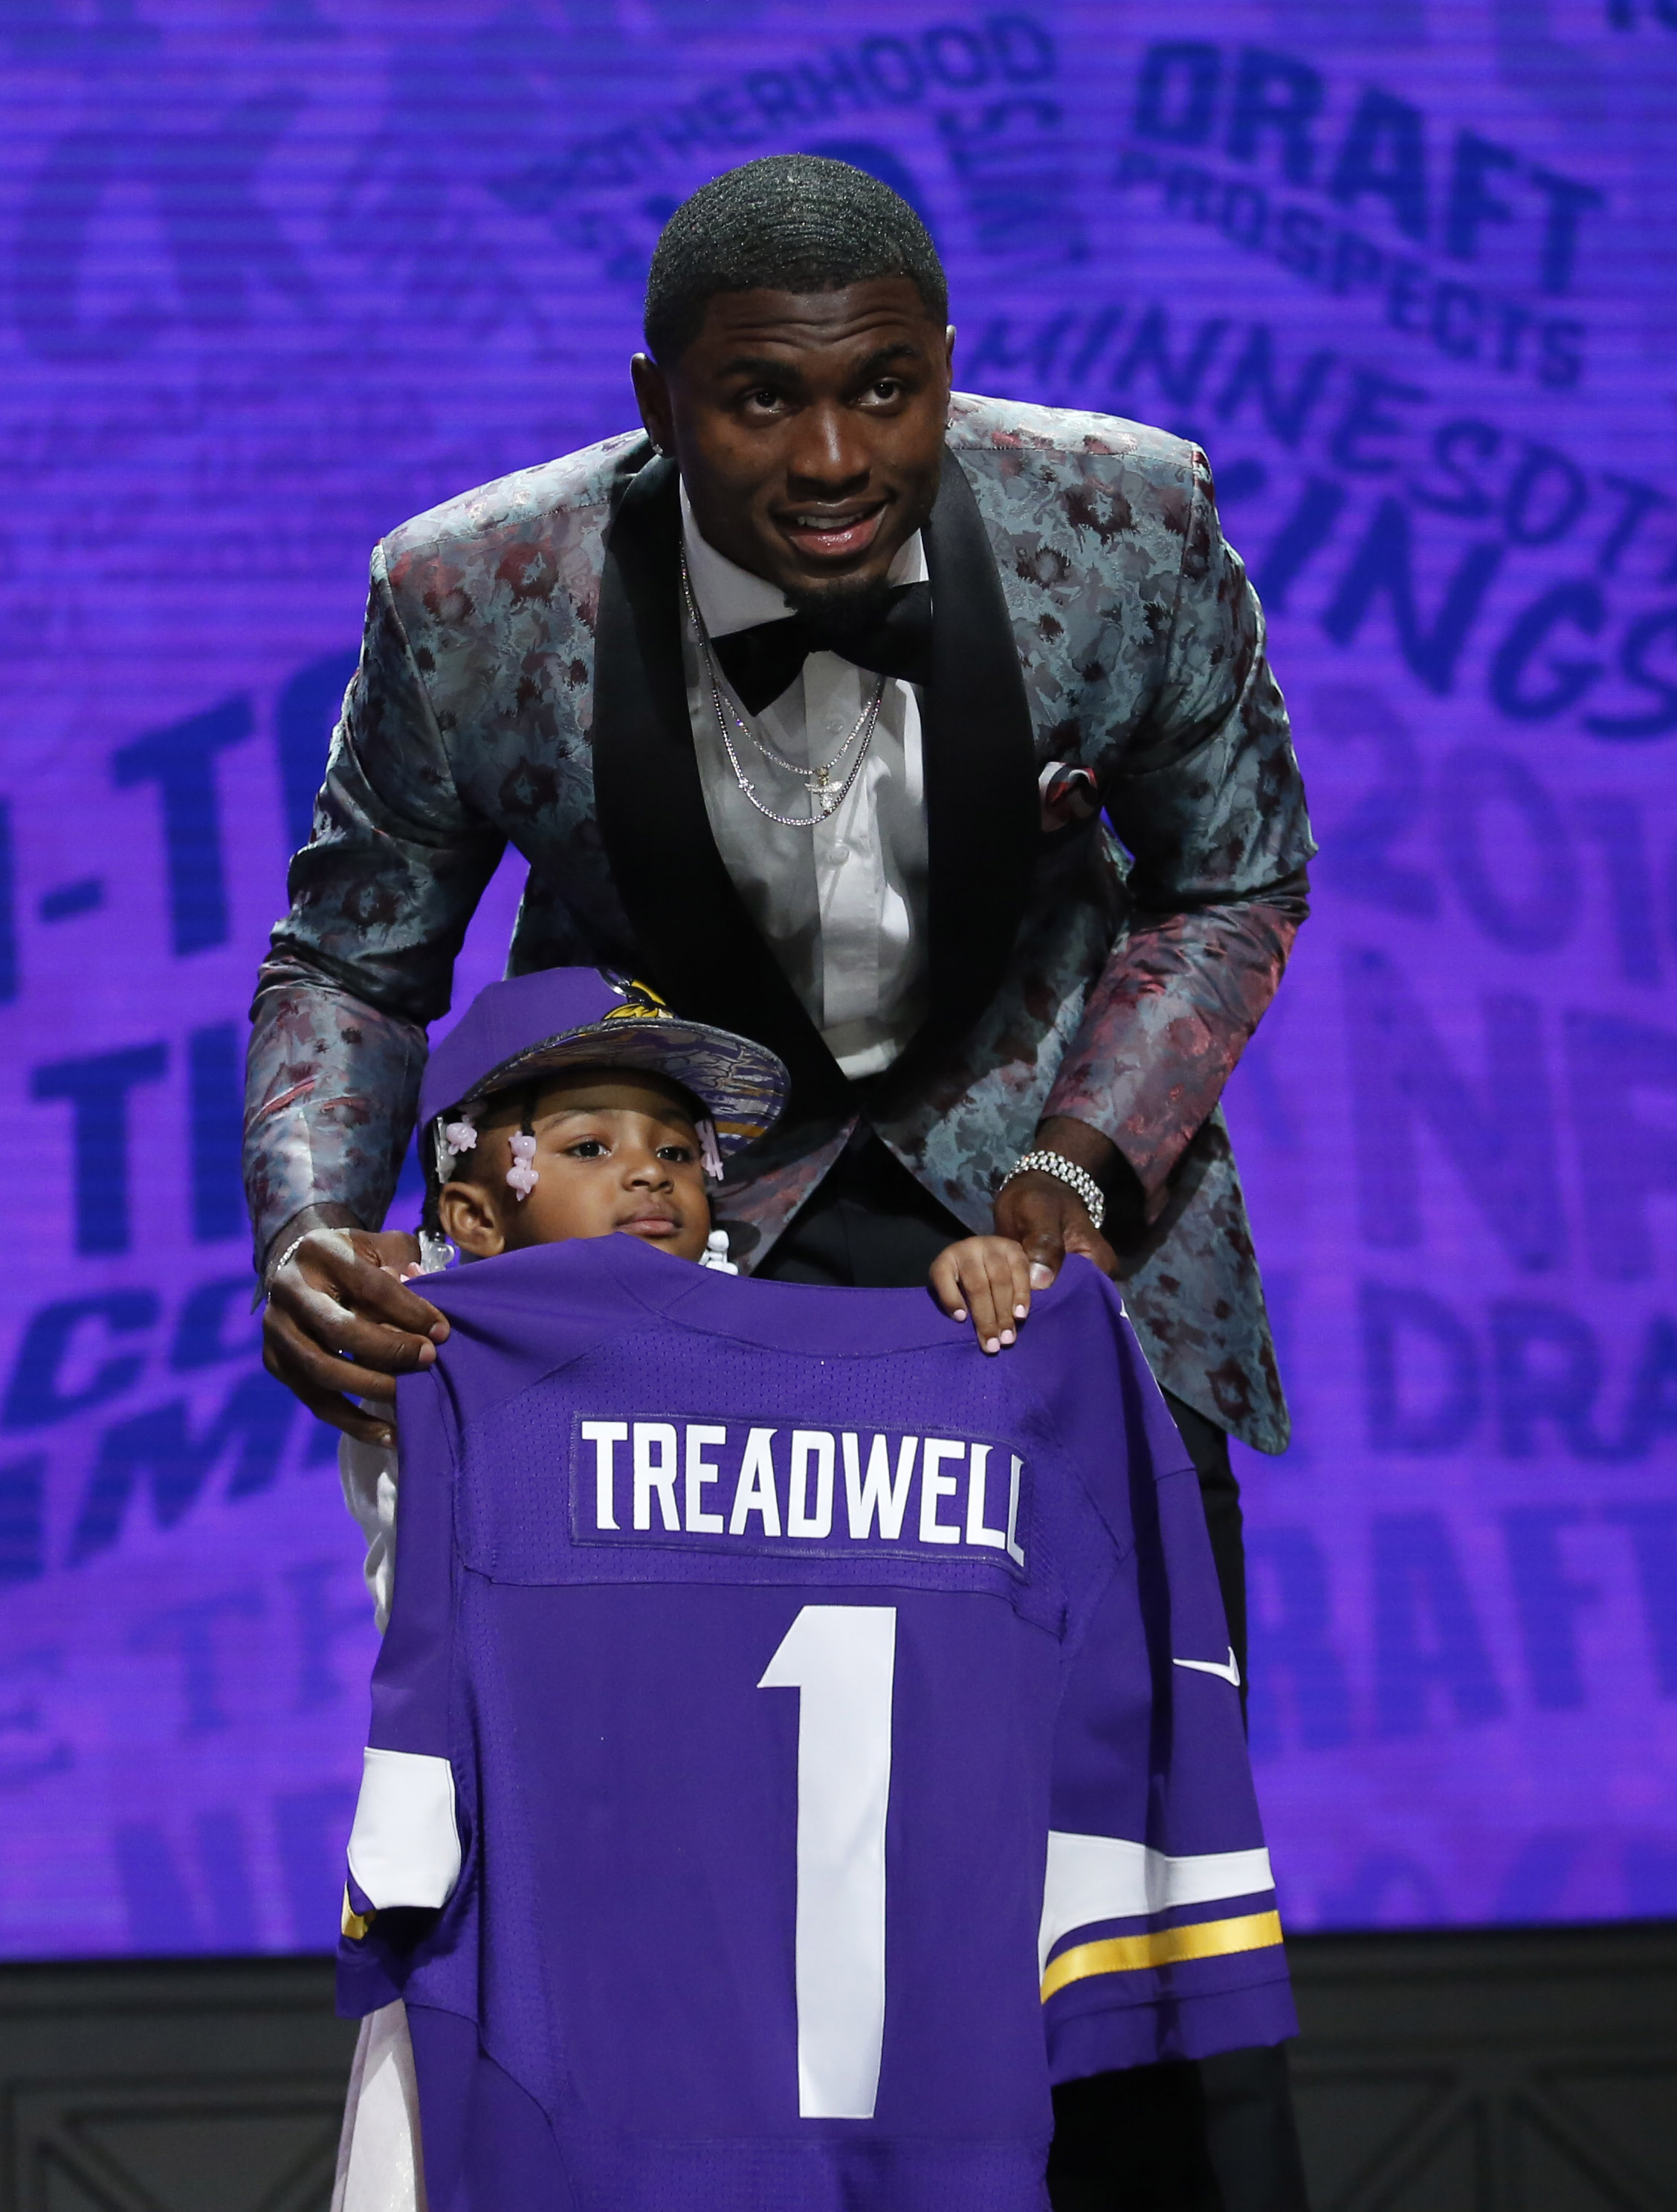 Apr 28, 2016; Chicago, IL, USA; Laquon Treadwell (Mississippi) poses with daughter Madison after being selected by the Minnesota Vikings as the number twenty-three overall pick in the first round of the 2016 NFL Draft at Auditorium Theatre. Mandatory Credit: Kamil Krzaczynski-USA TODAY Sports ORG XMIT: USATSI-265038 ORIG FILE ID: 20160428_jel_kb1_152.jpg